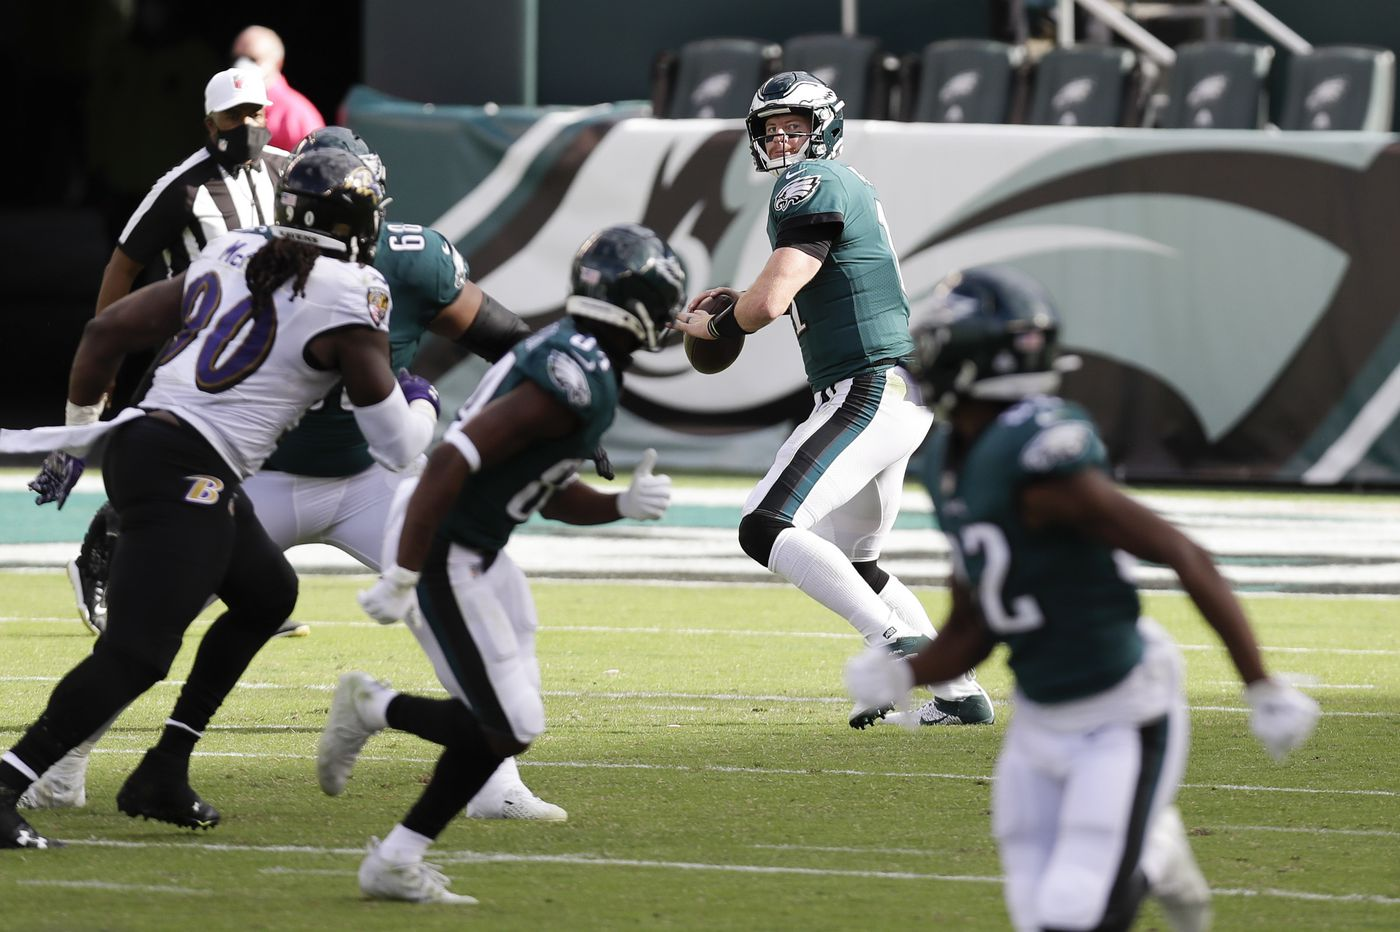 Carson Wentz shrugs off the hits, and gathers his depleted forces to face the Giants on Thursday